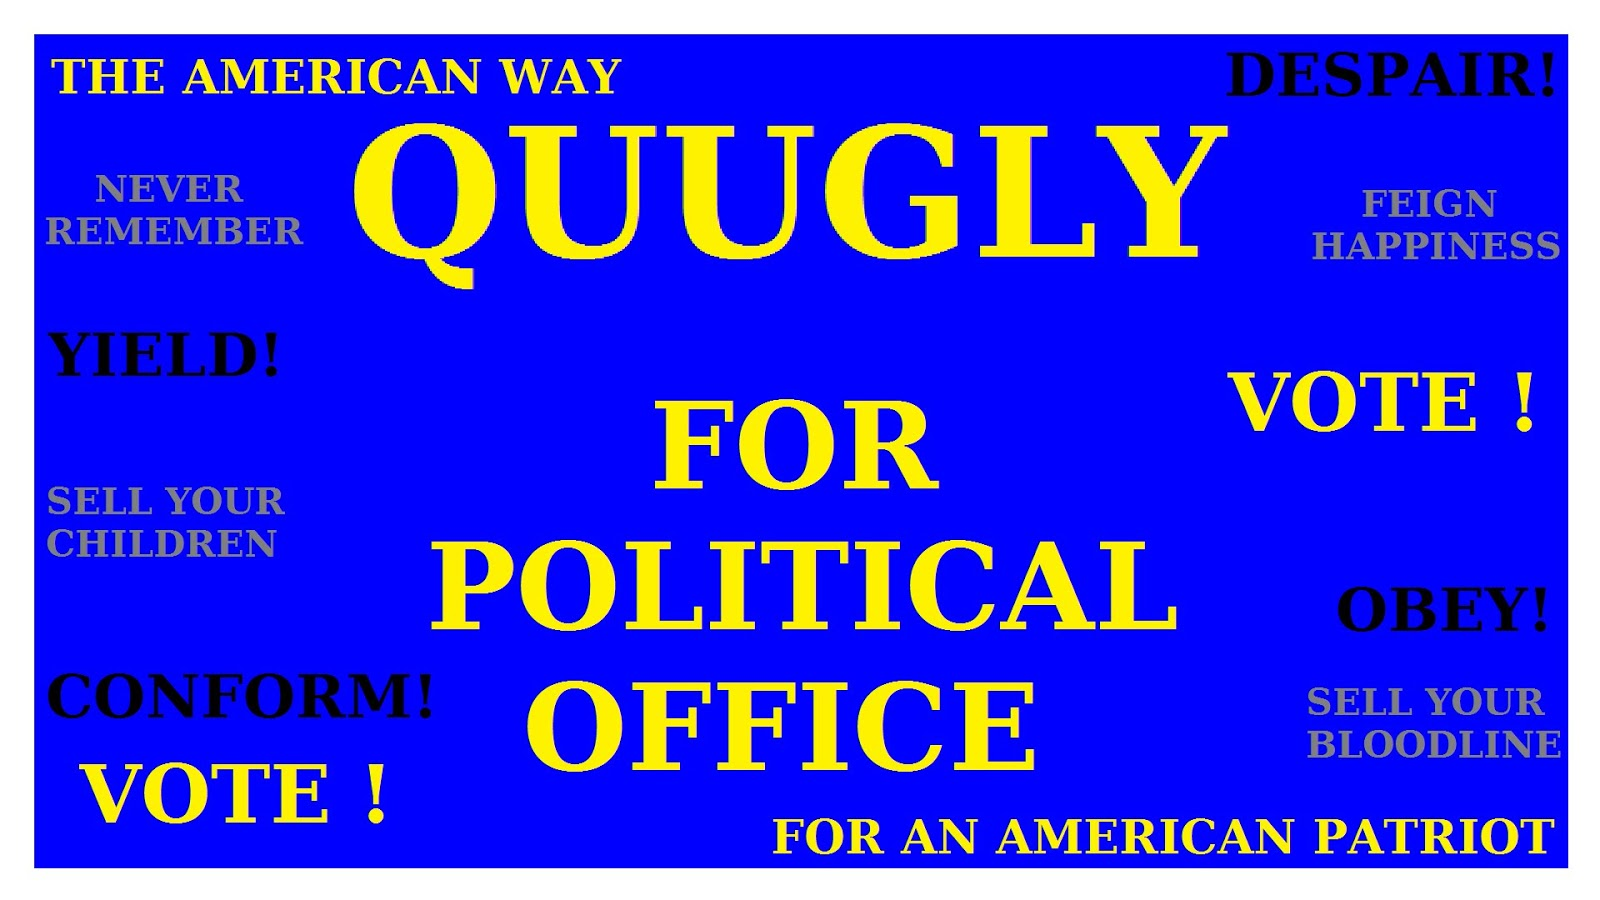 political quugly hollyquugly television quugly ceiling speakers quugly coalition quugly stupid quugly selfish quugly